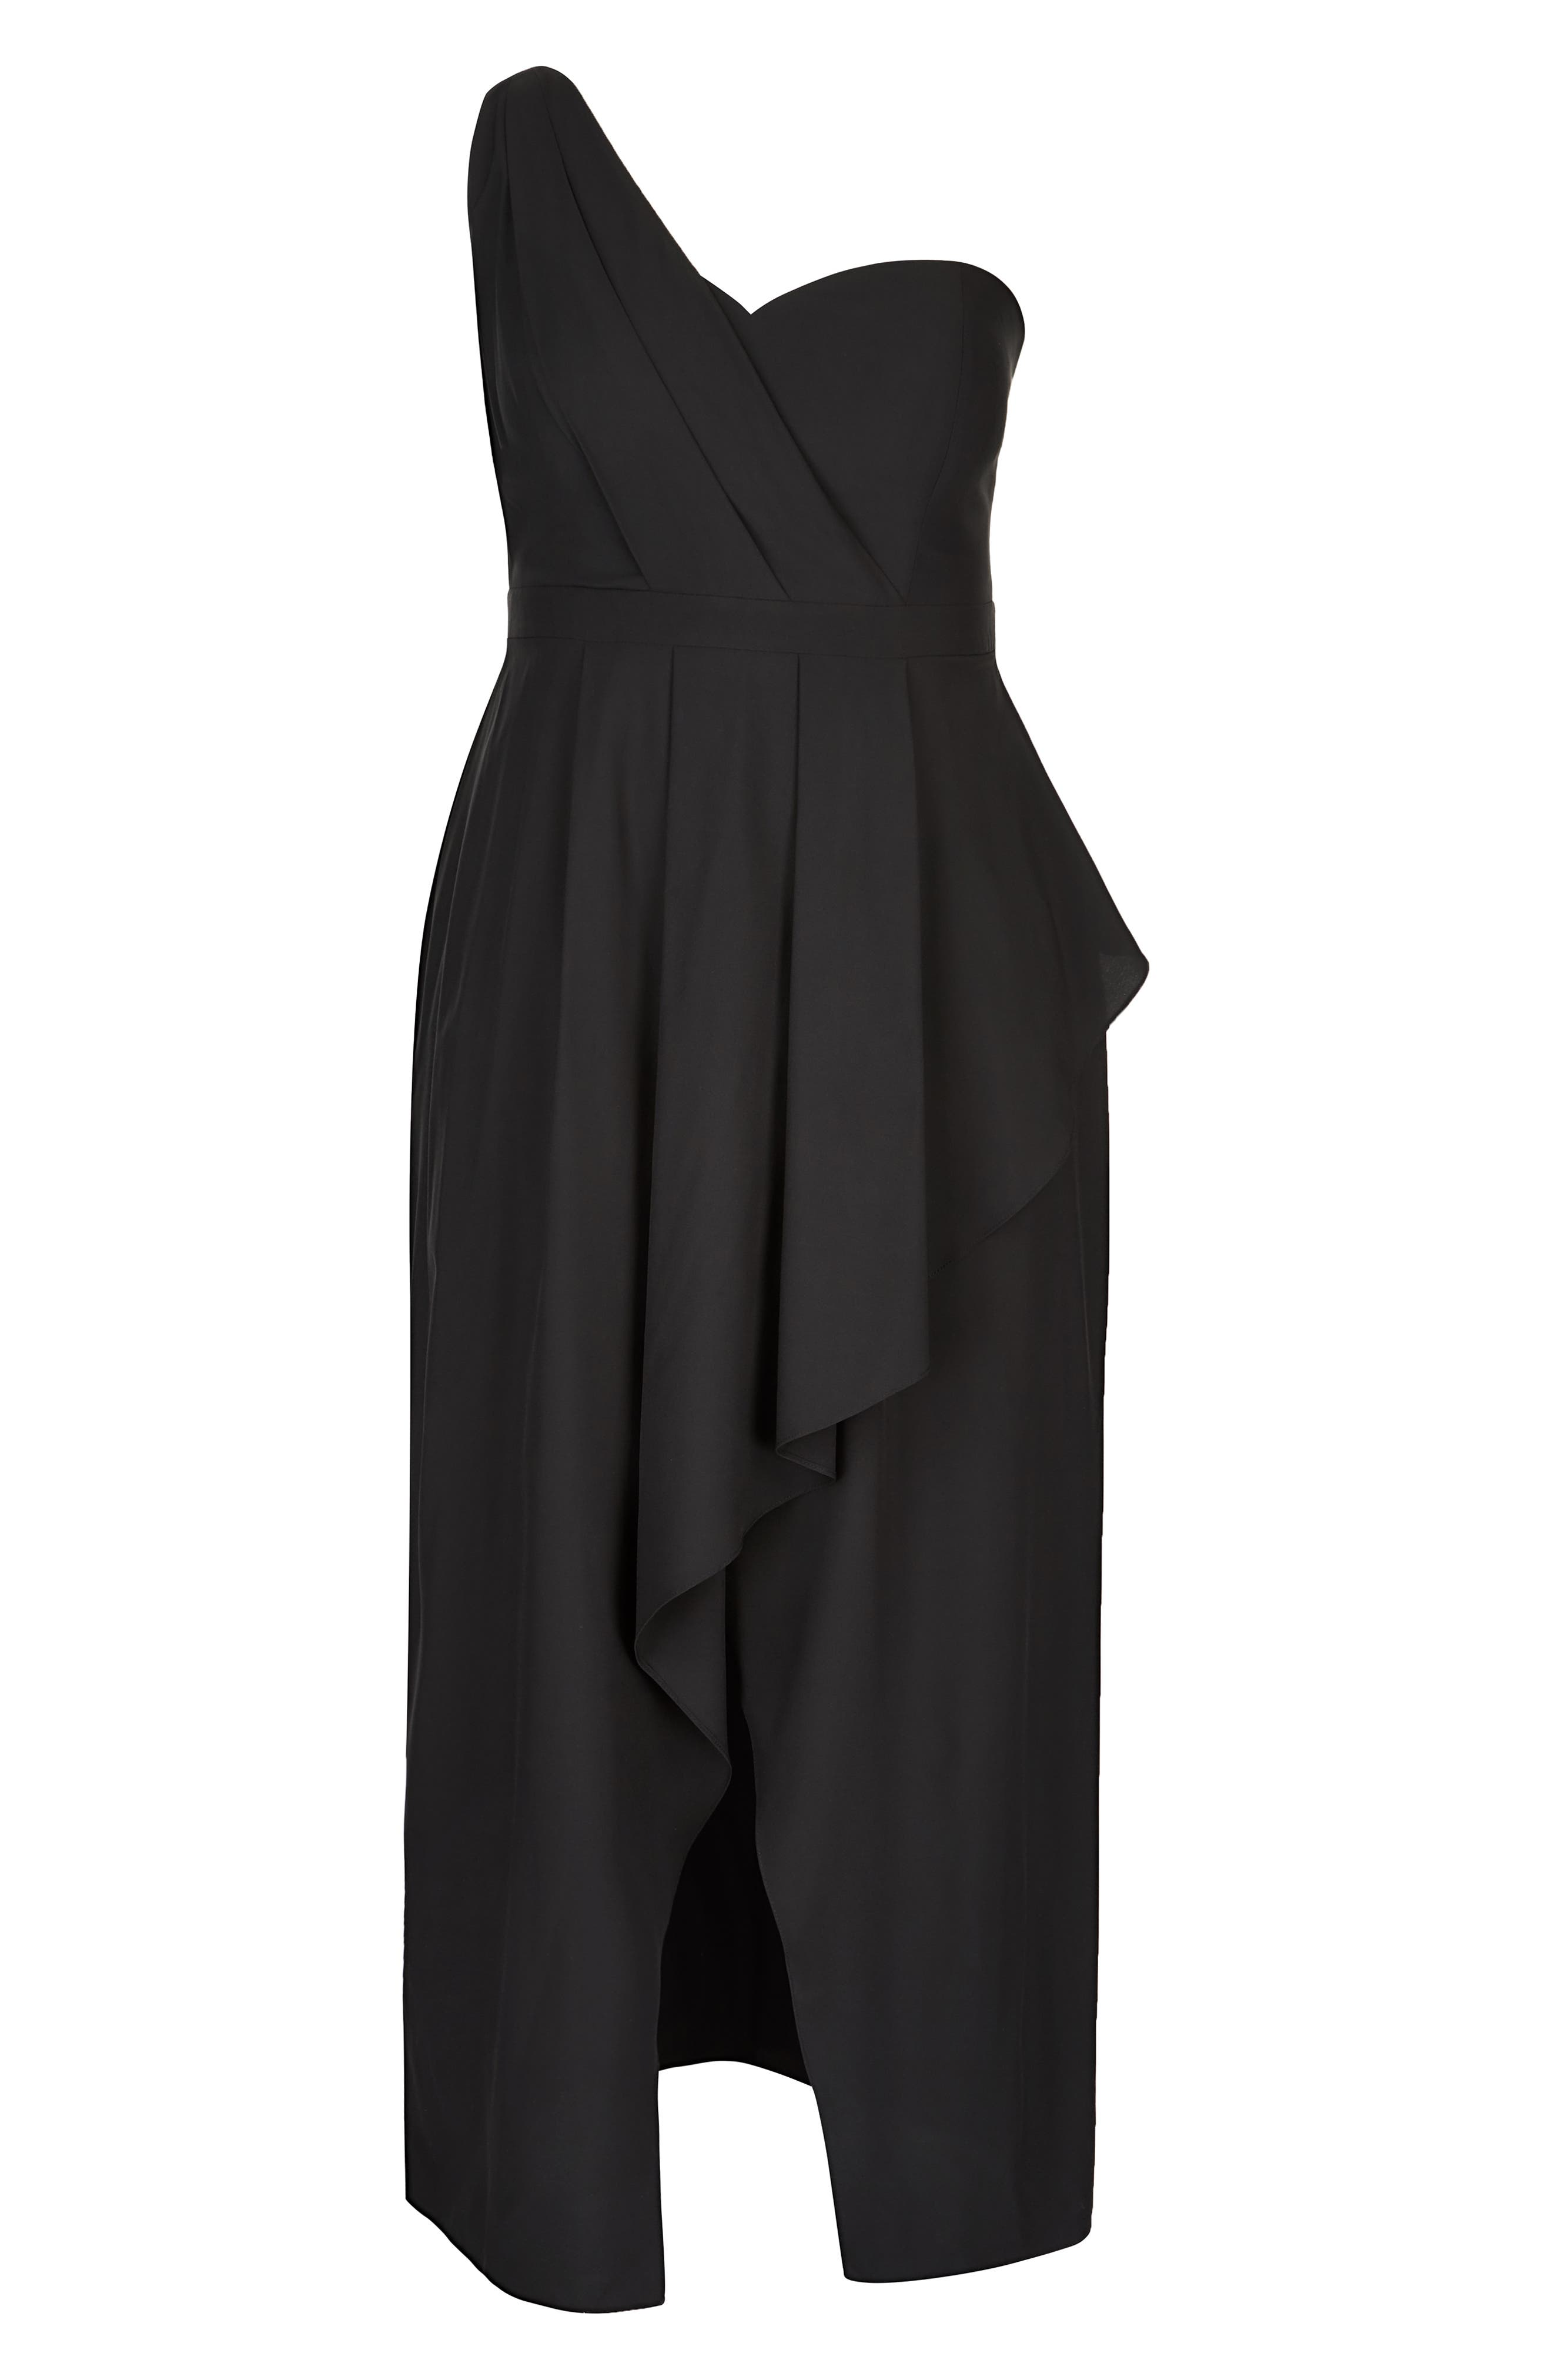 Allure One-Shoulder Maxi Dress,                             Alternate thumbnail 4, color,                             BLACK